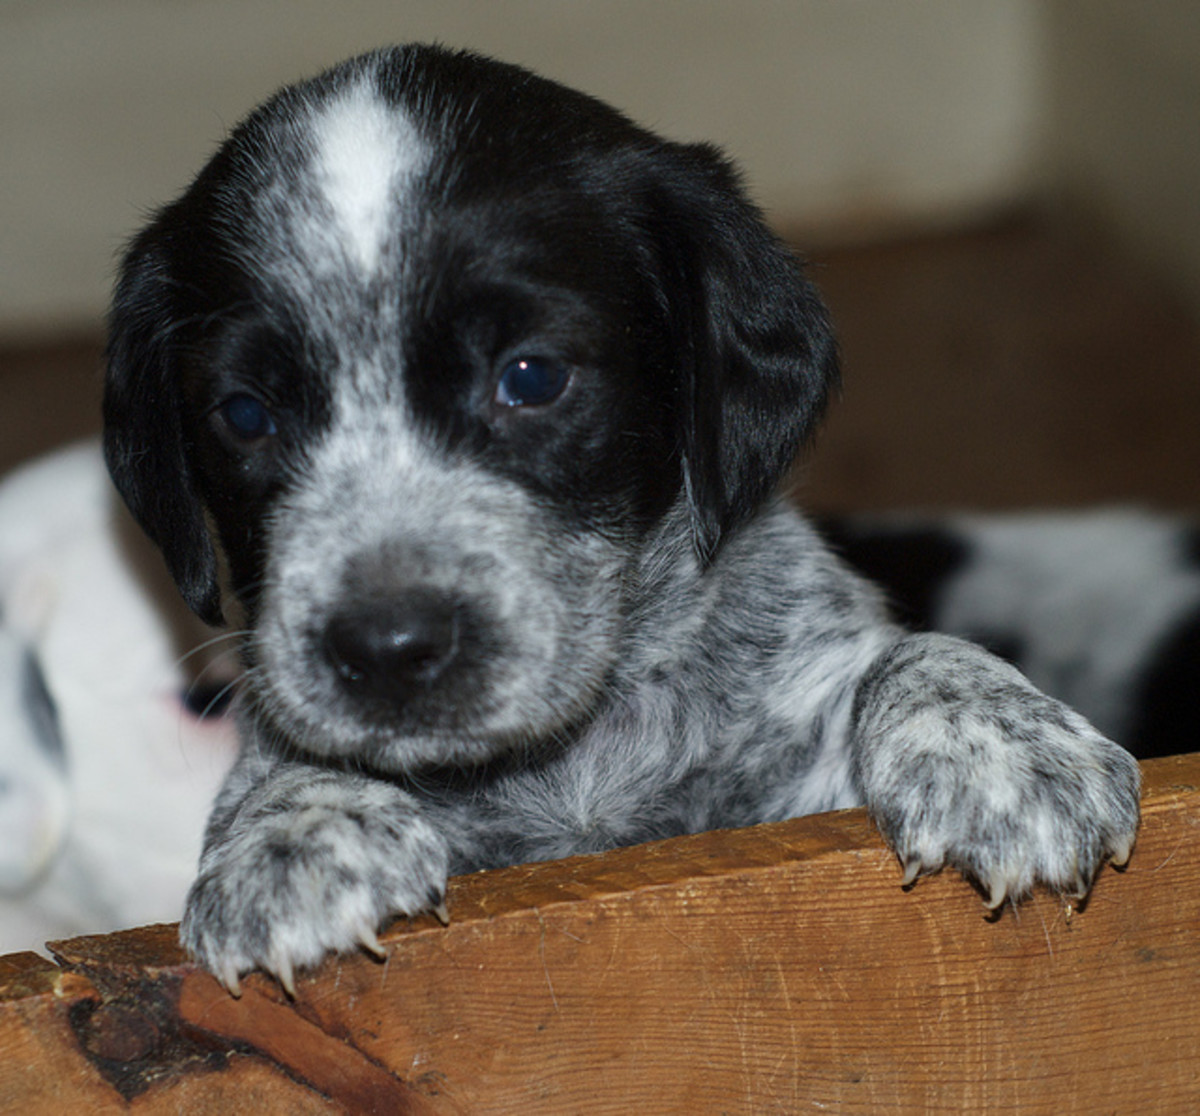 An Australian Cattle Dog puppy.